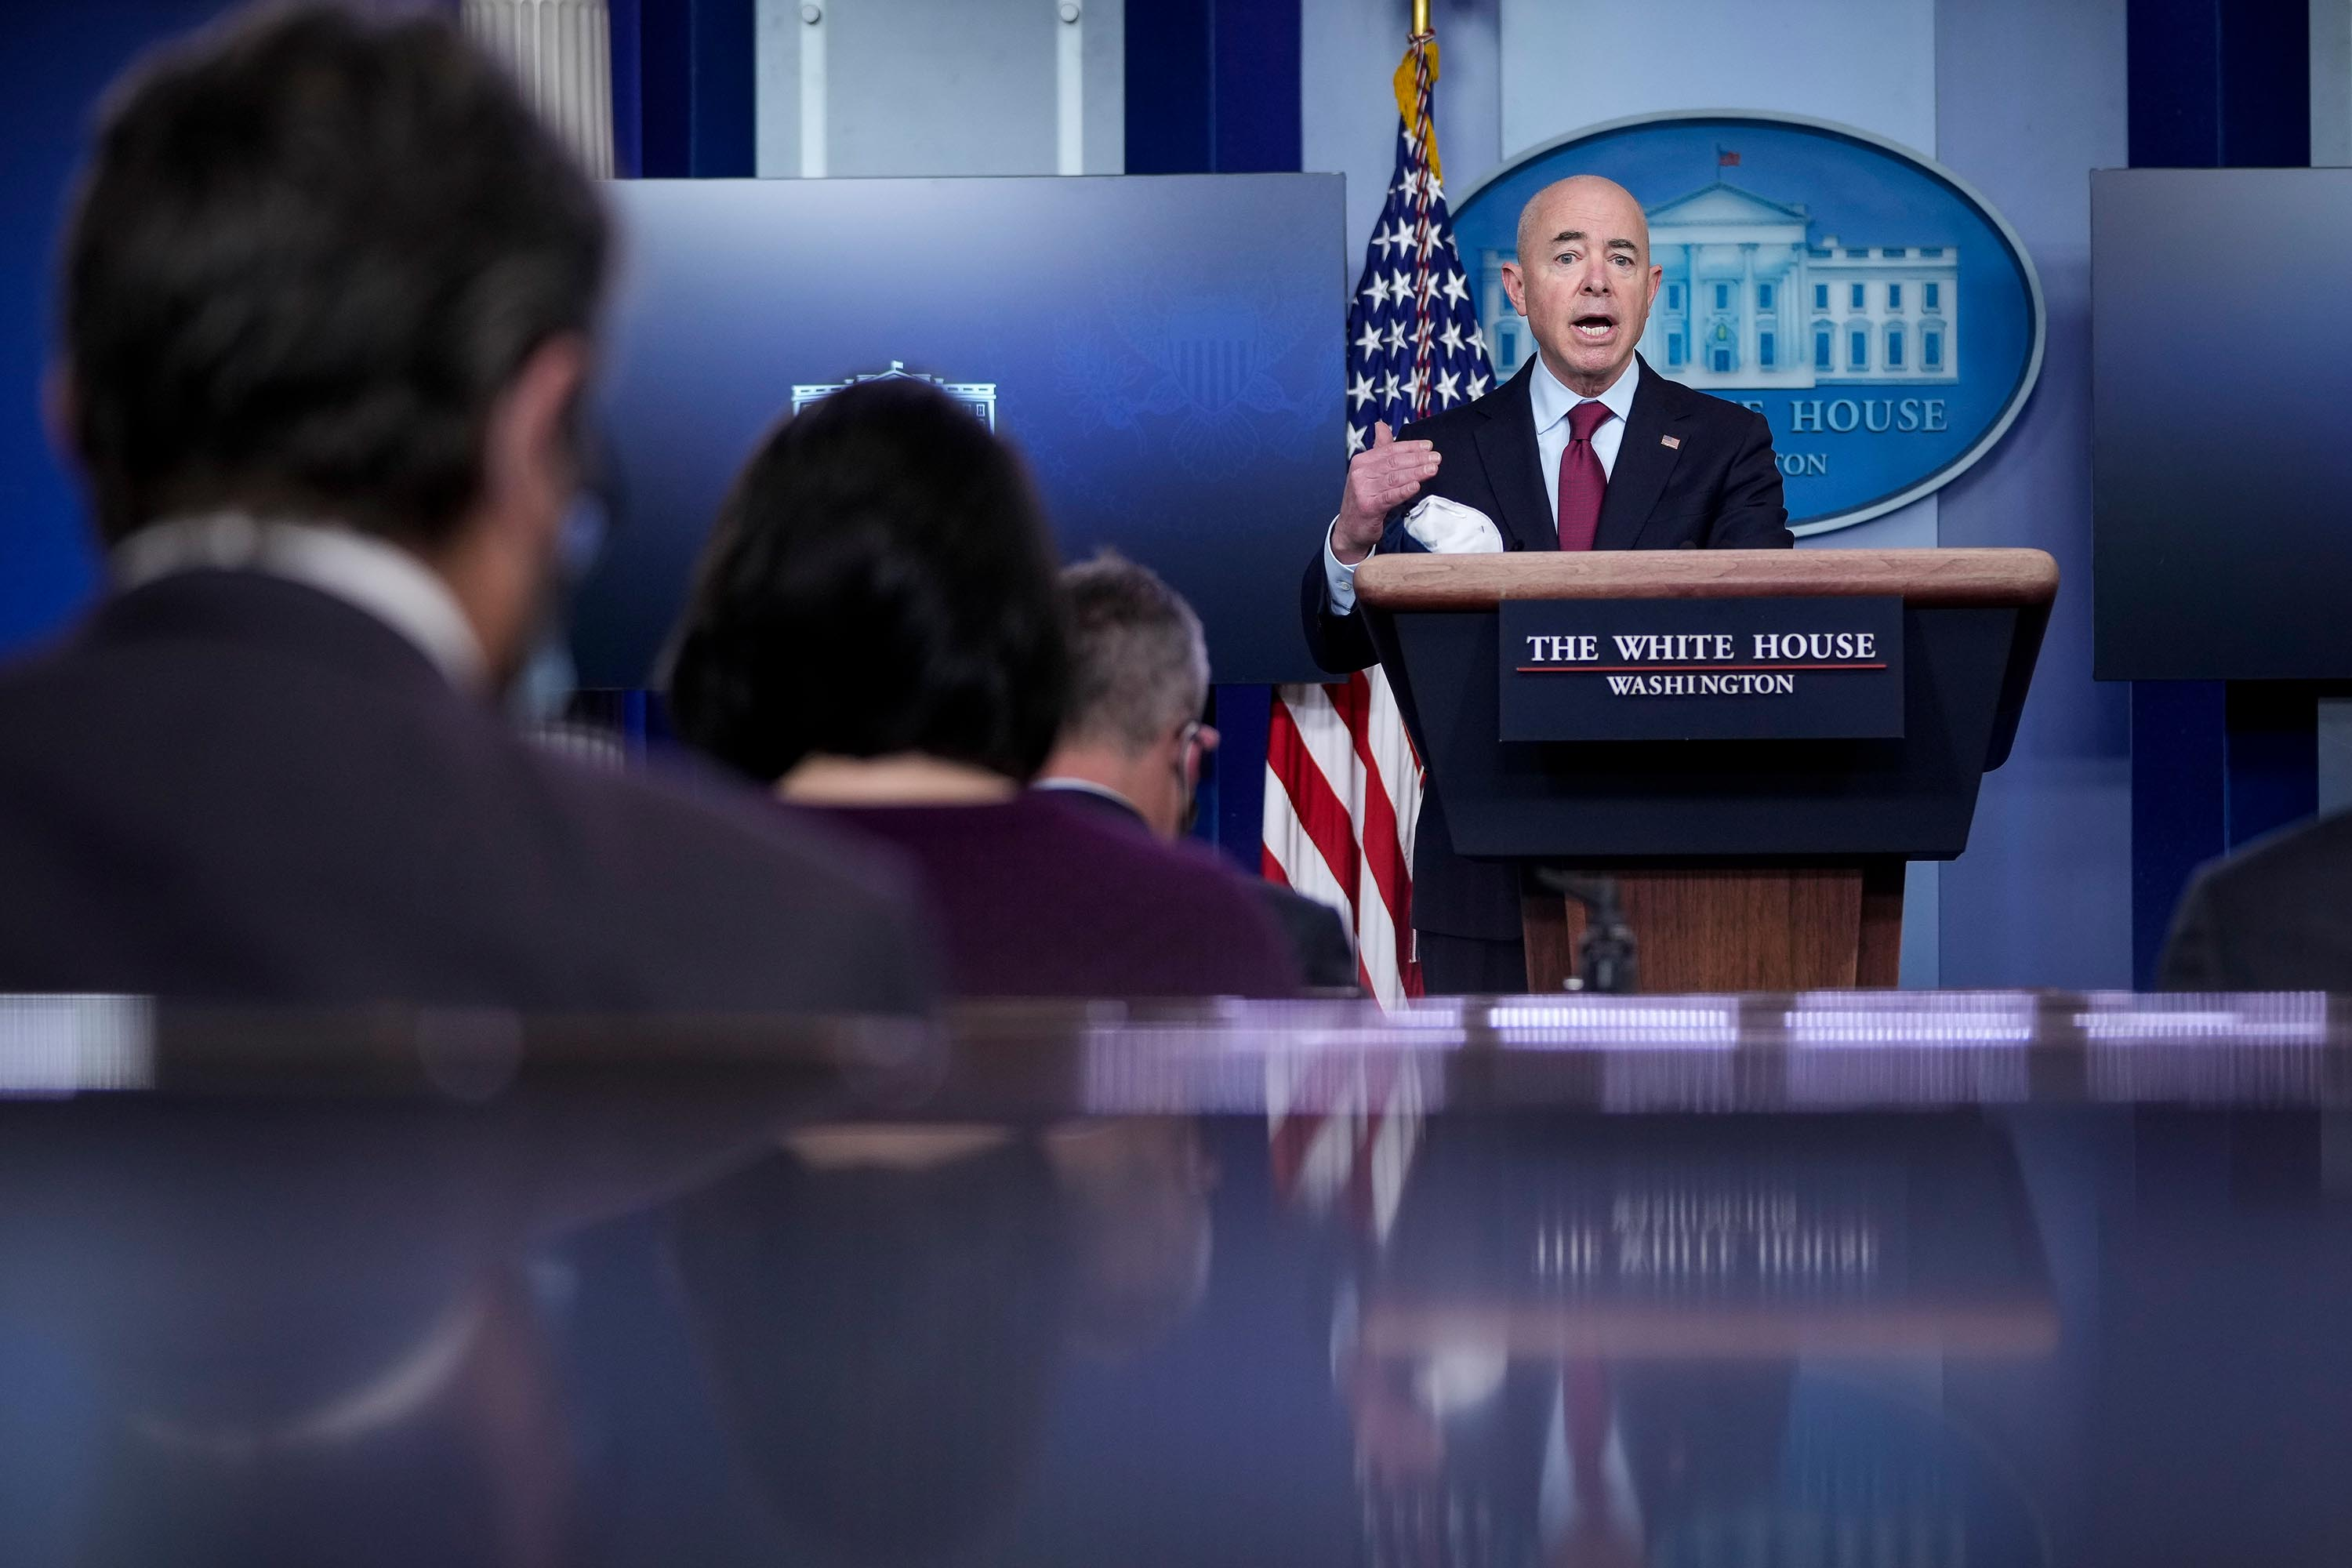 Families separated at the border could be reunited in US, Homeland Security secretary says